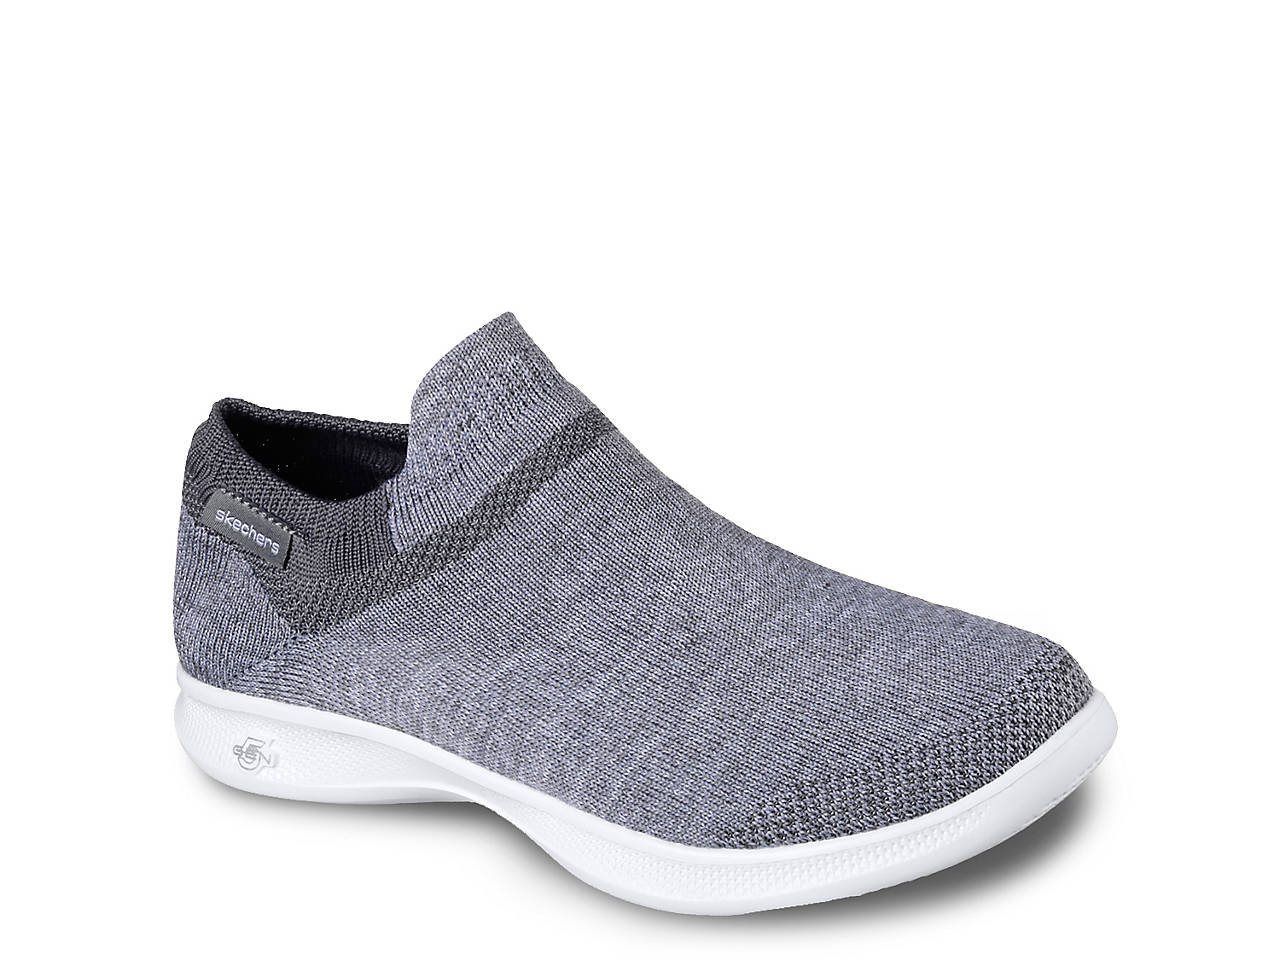 abd52ab046 Skechers GOstep Lite Ultrasock Slip-On Sneaker Women's Shoes | DSW